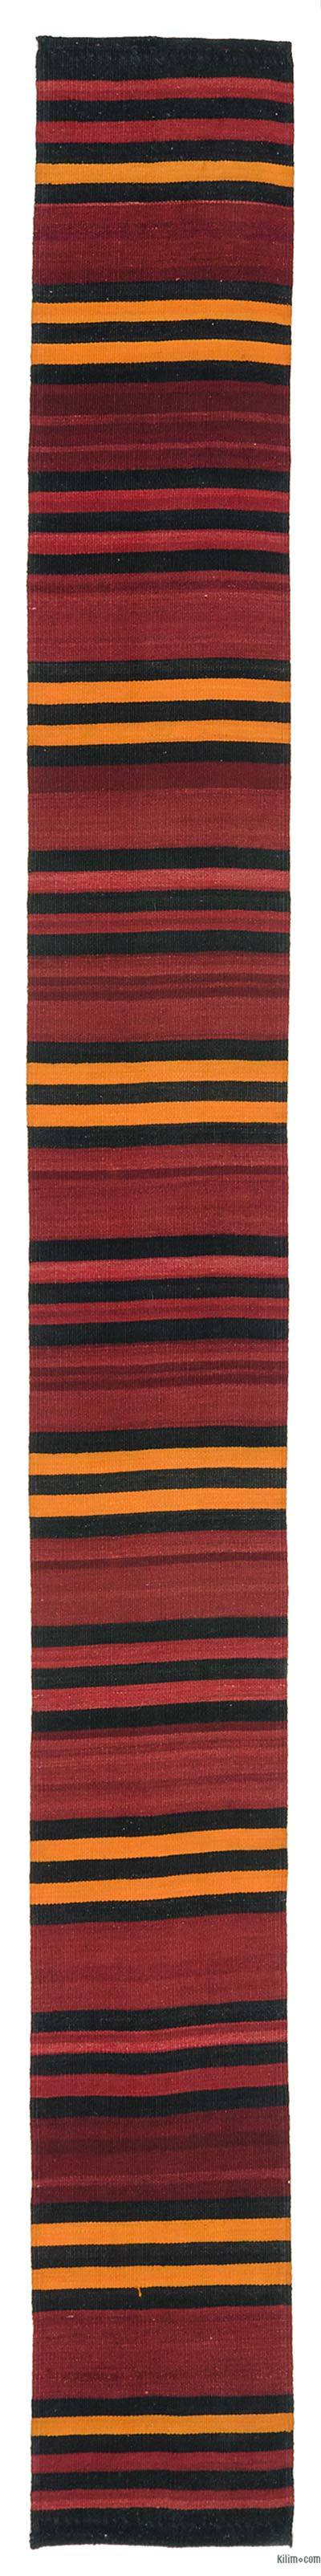 "Vintage Turkish Kilim Rug  - 1'10"" x 15'4"" (22 in. x 184 in.)"